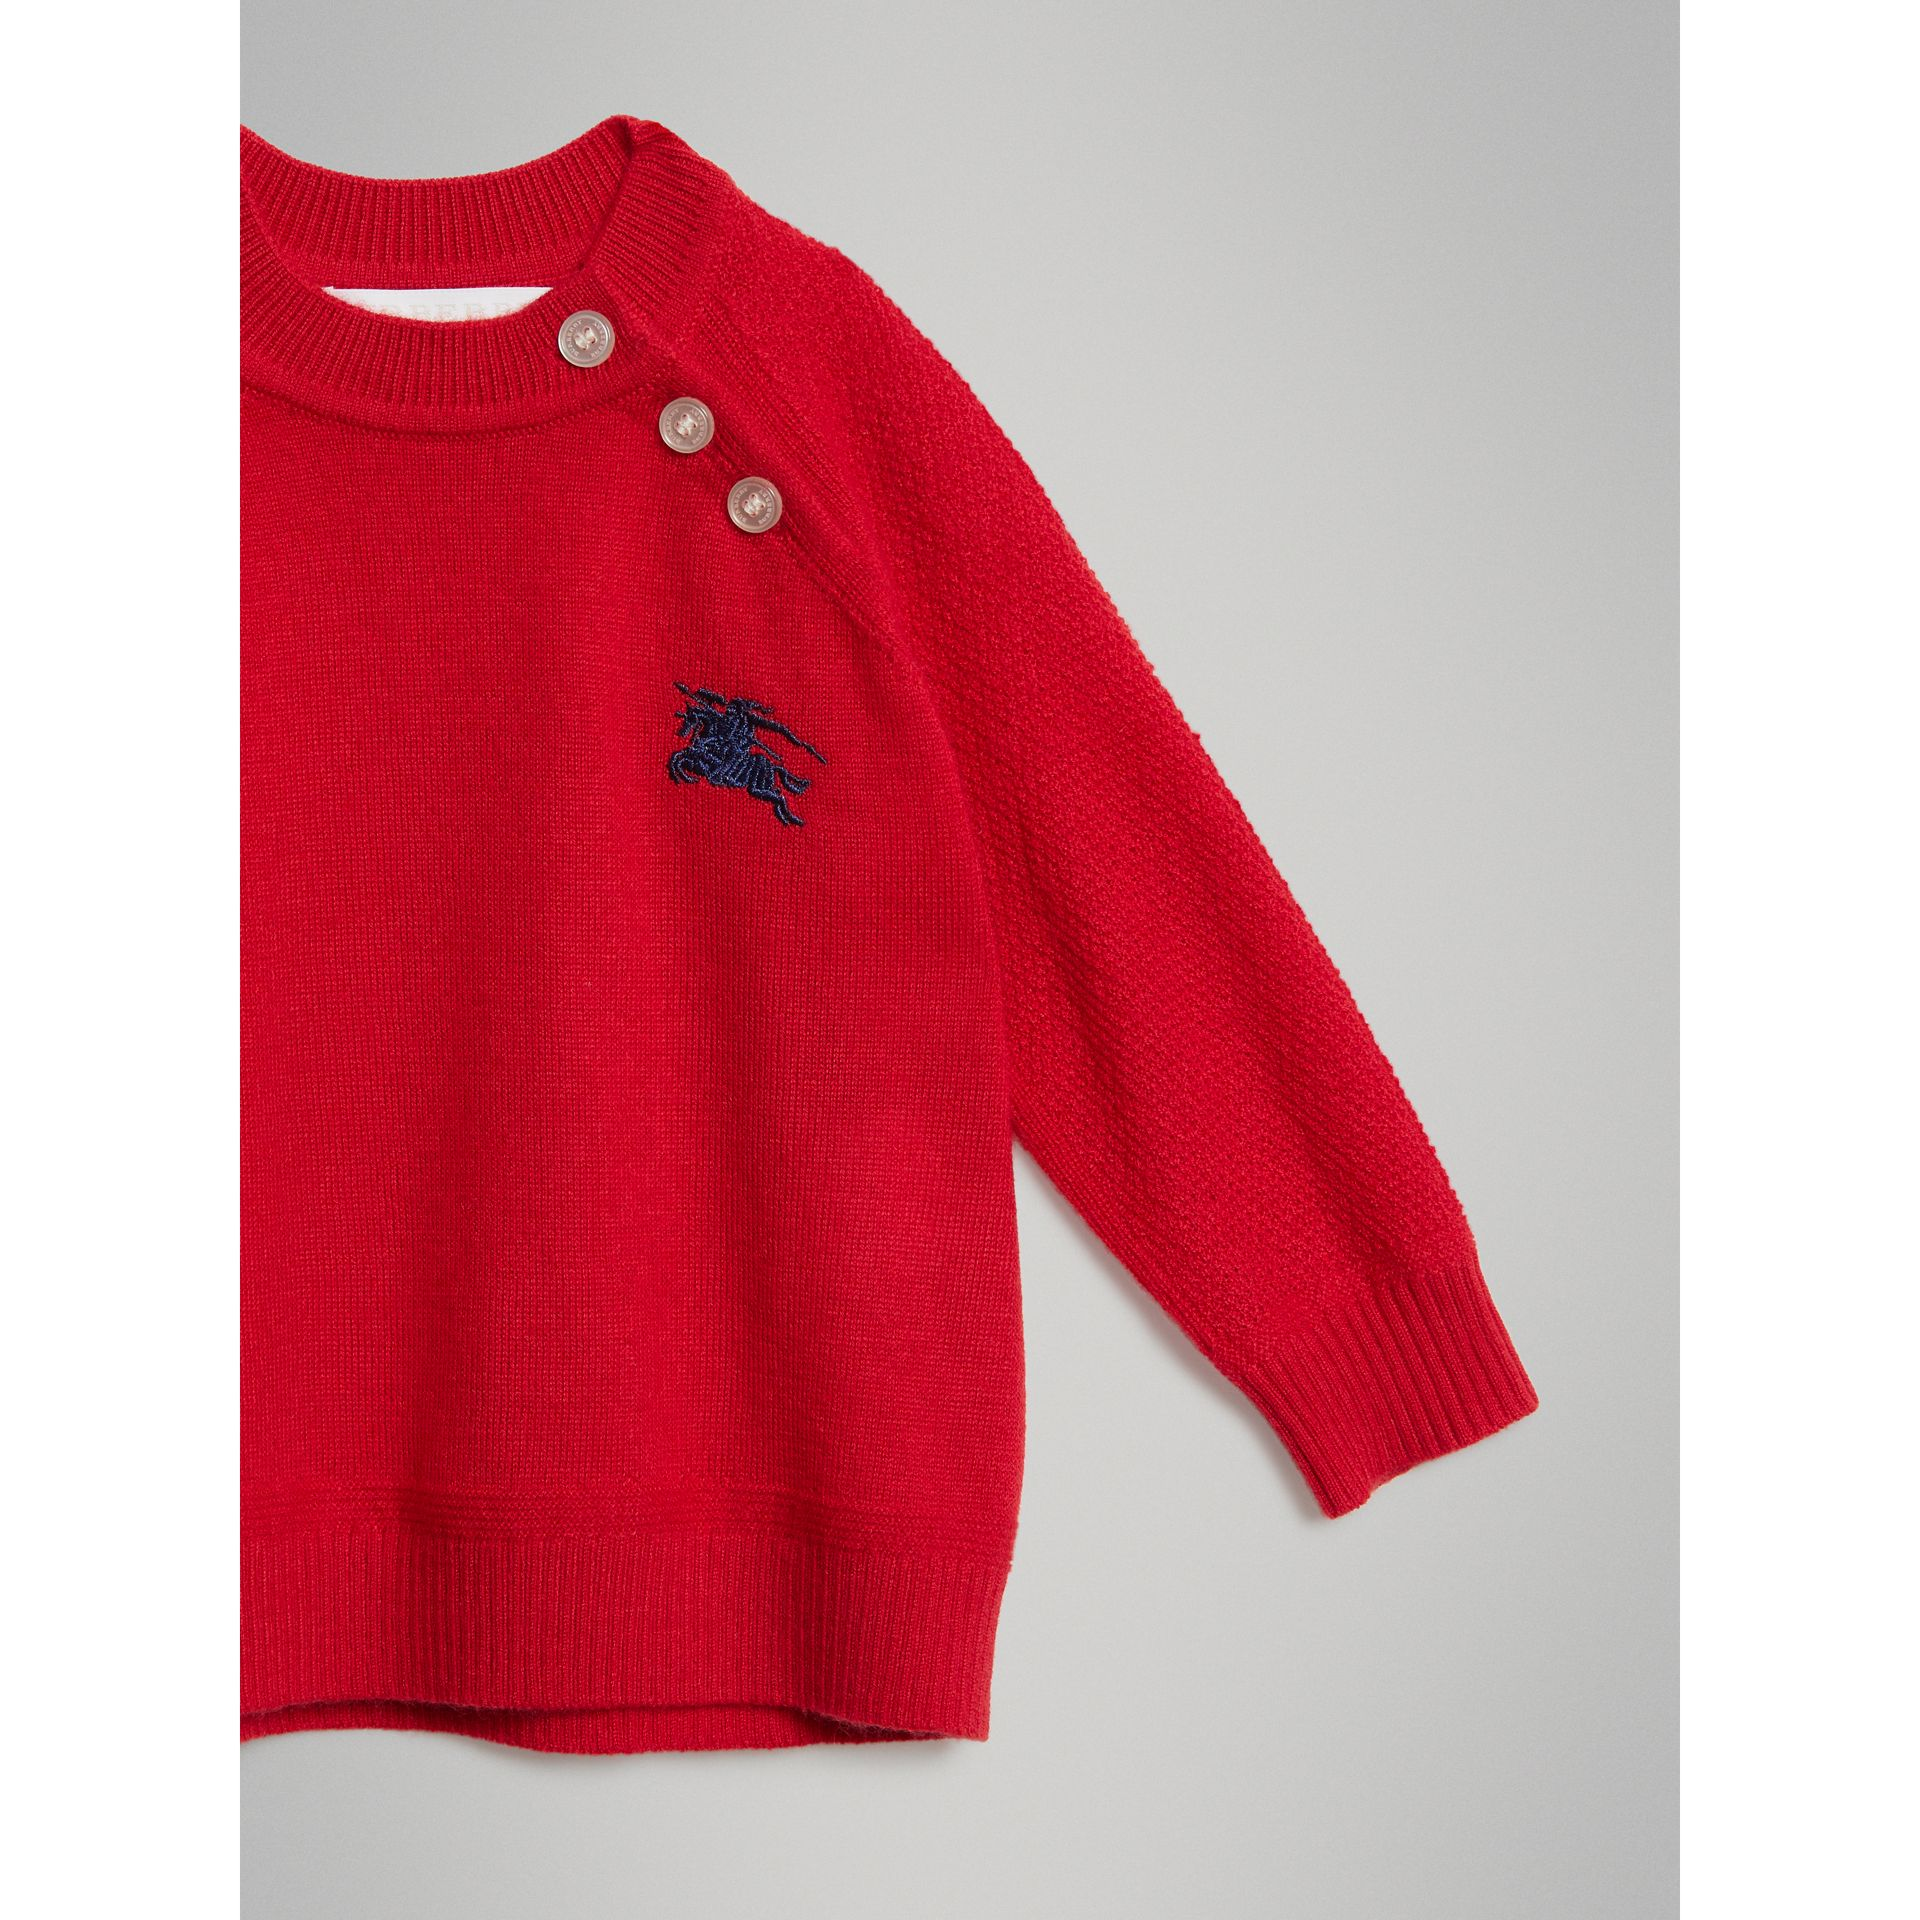 Contrast Motif Cashmere Sweater in Burgundy Red - Children | Burberry - gallery image 4